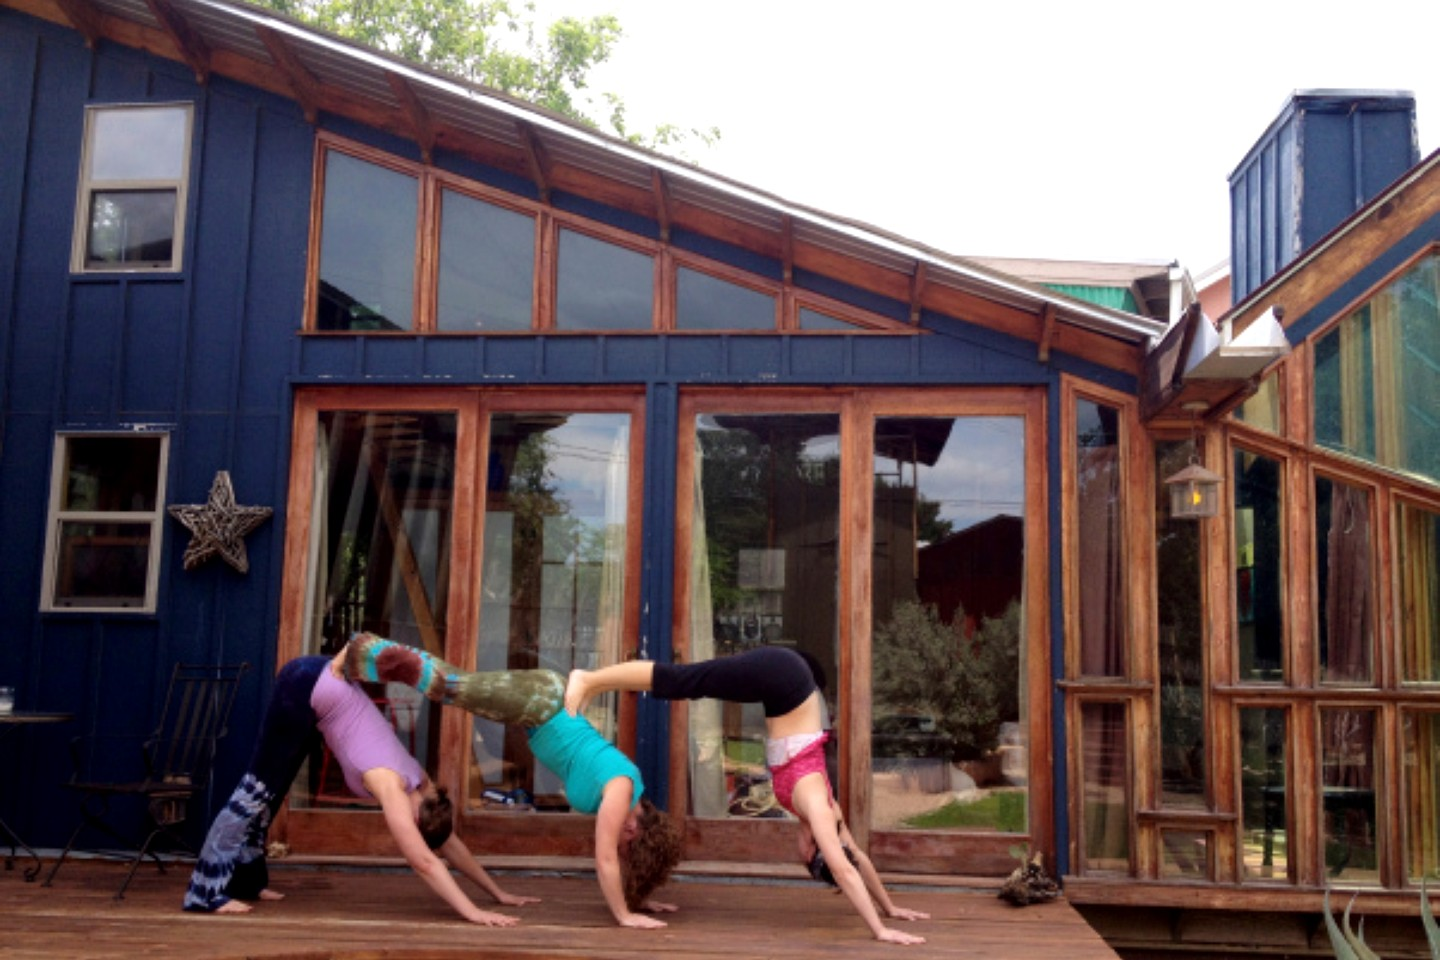 eco cabins in texas hill country offer yoga retreats near. Black Bedroom Furniture Sets. Home Design Ideas